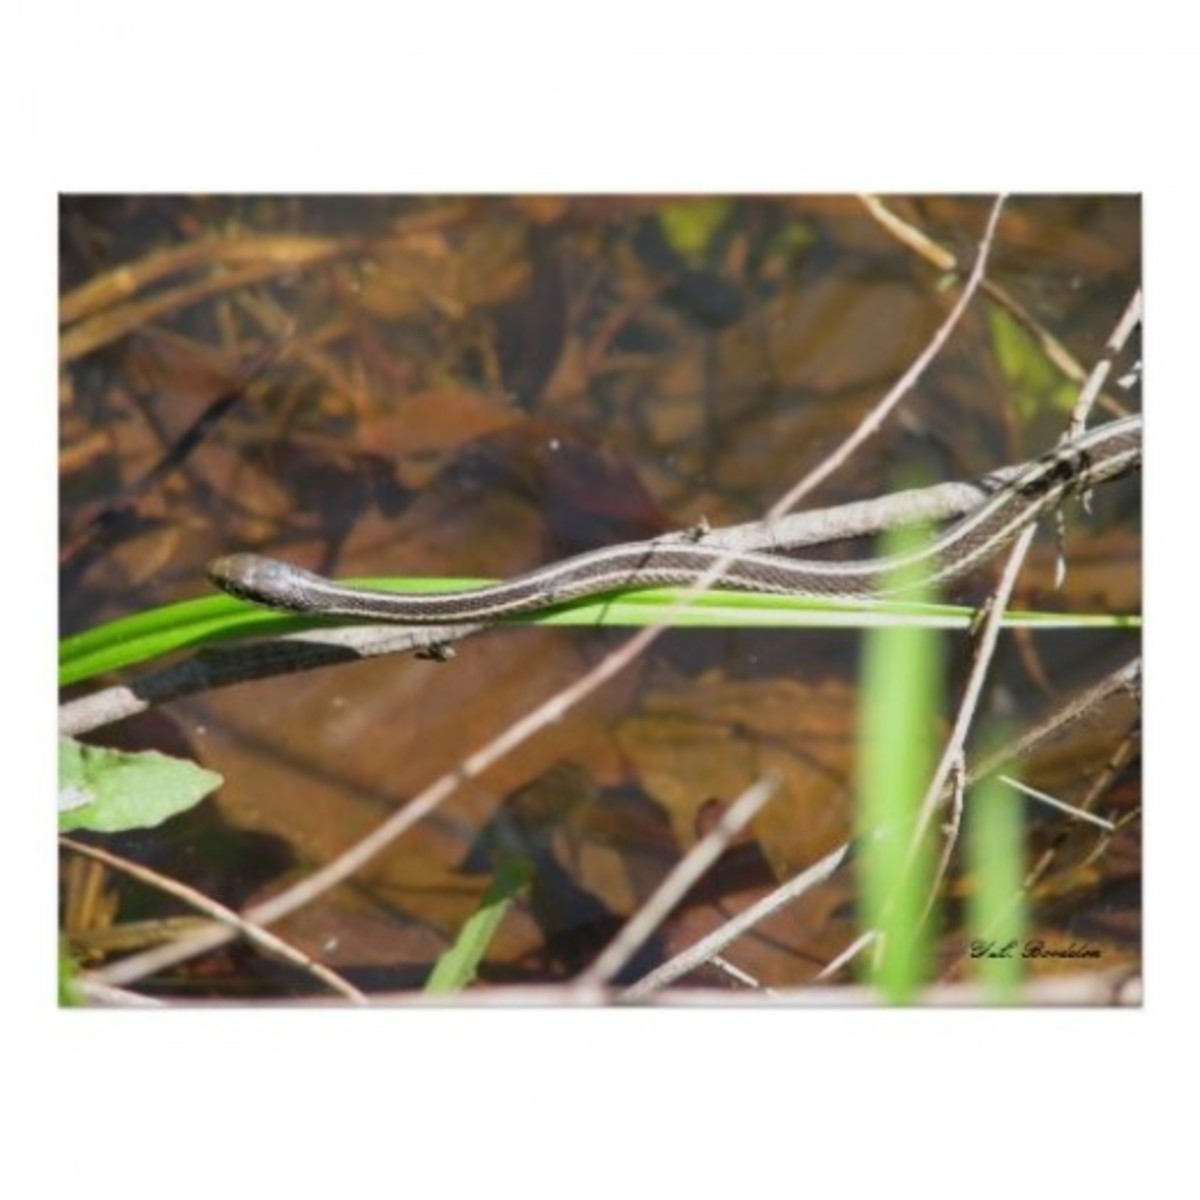 This young ribbon snake was hunting for frogs around our pond in Southeastern Louisiana.